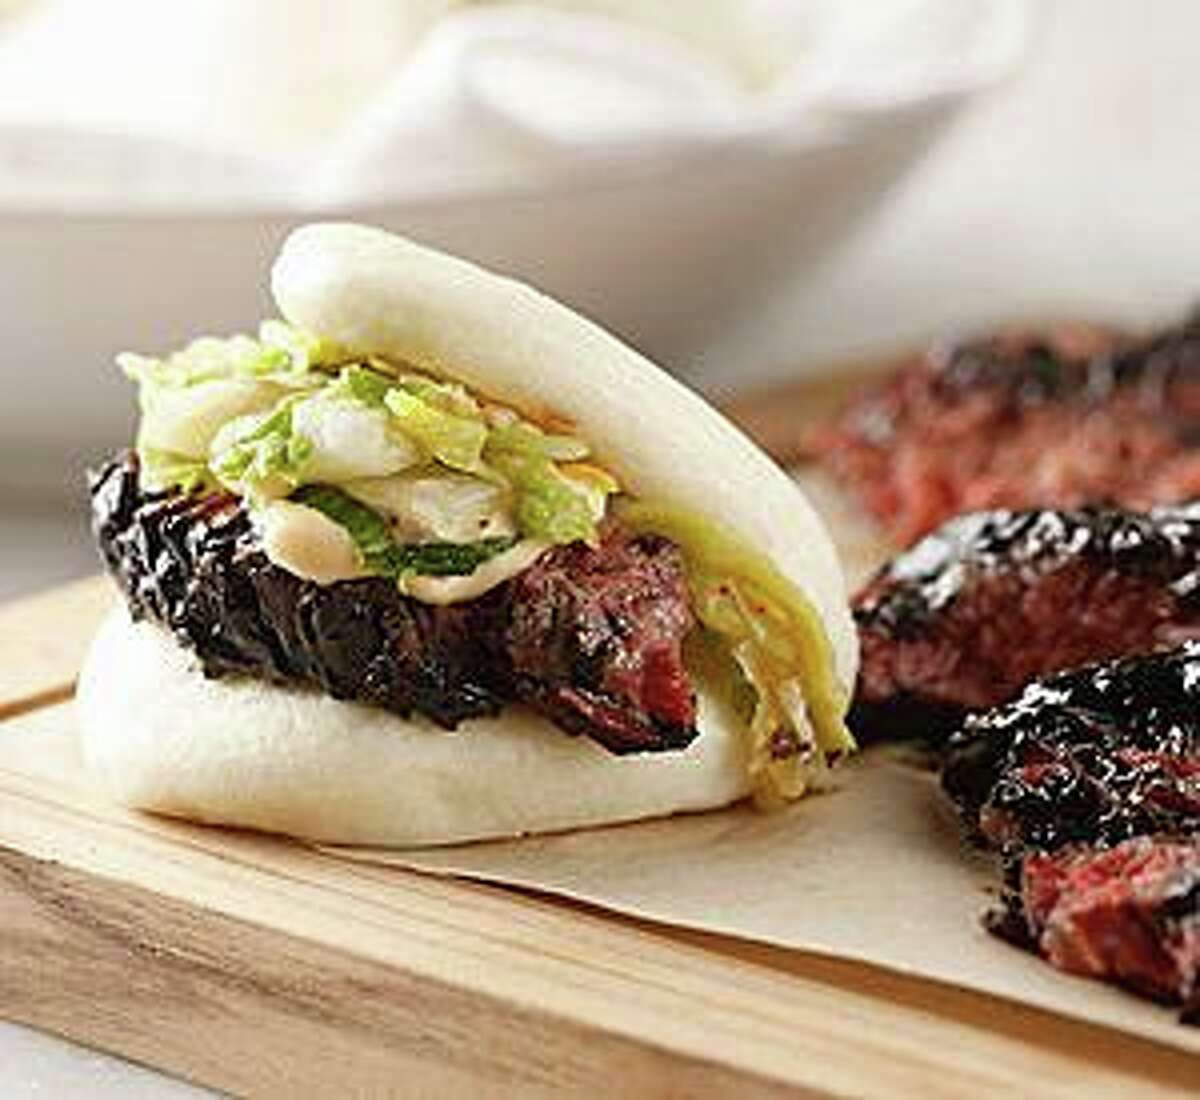 The fare at The Cottage restaurant features accents from a variety of ethnic cuisines, like the Wagyu brisket steamed buns.